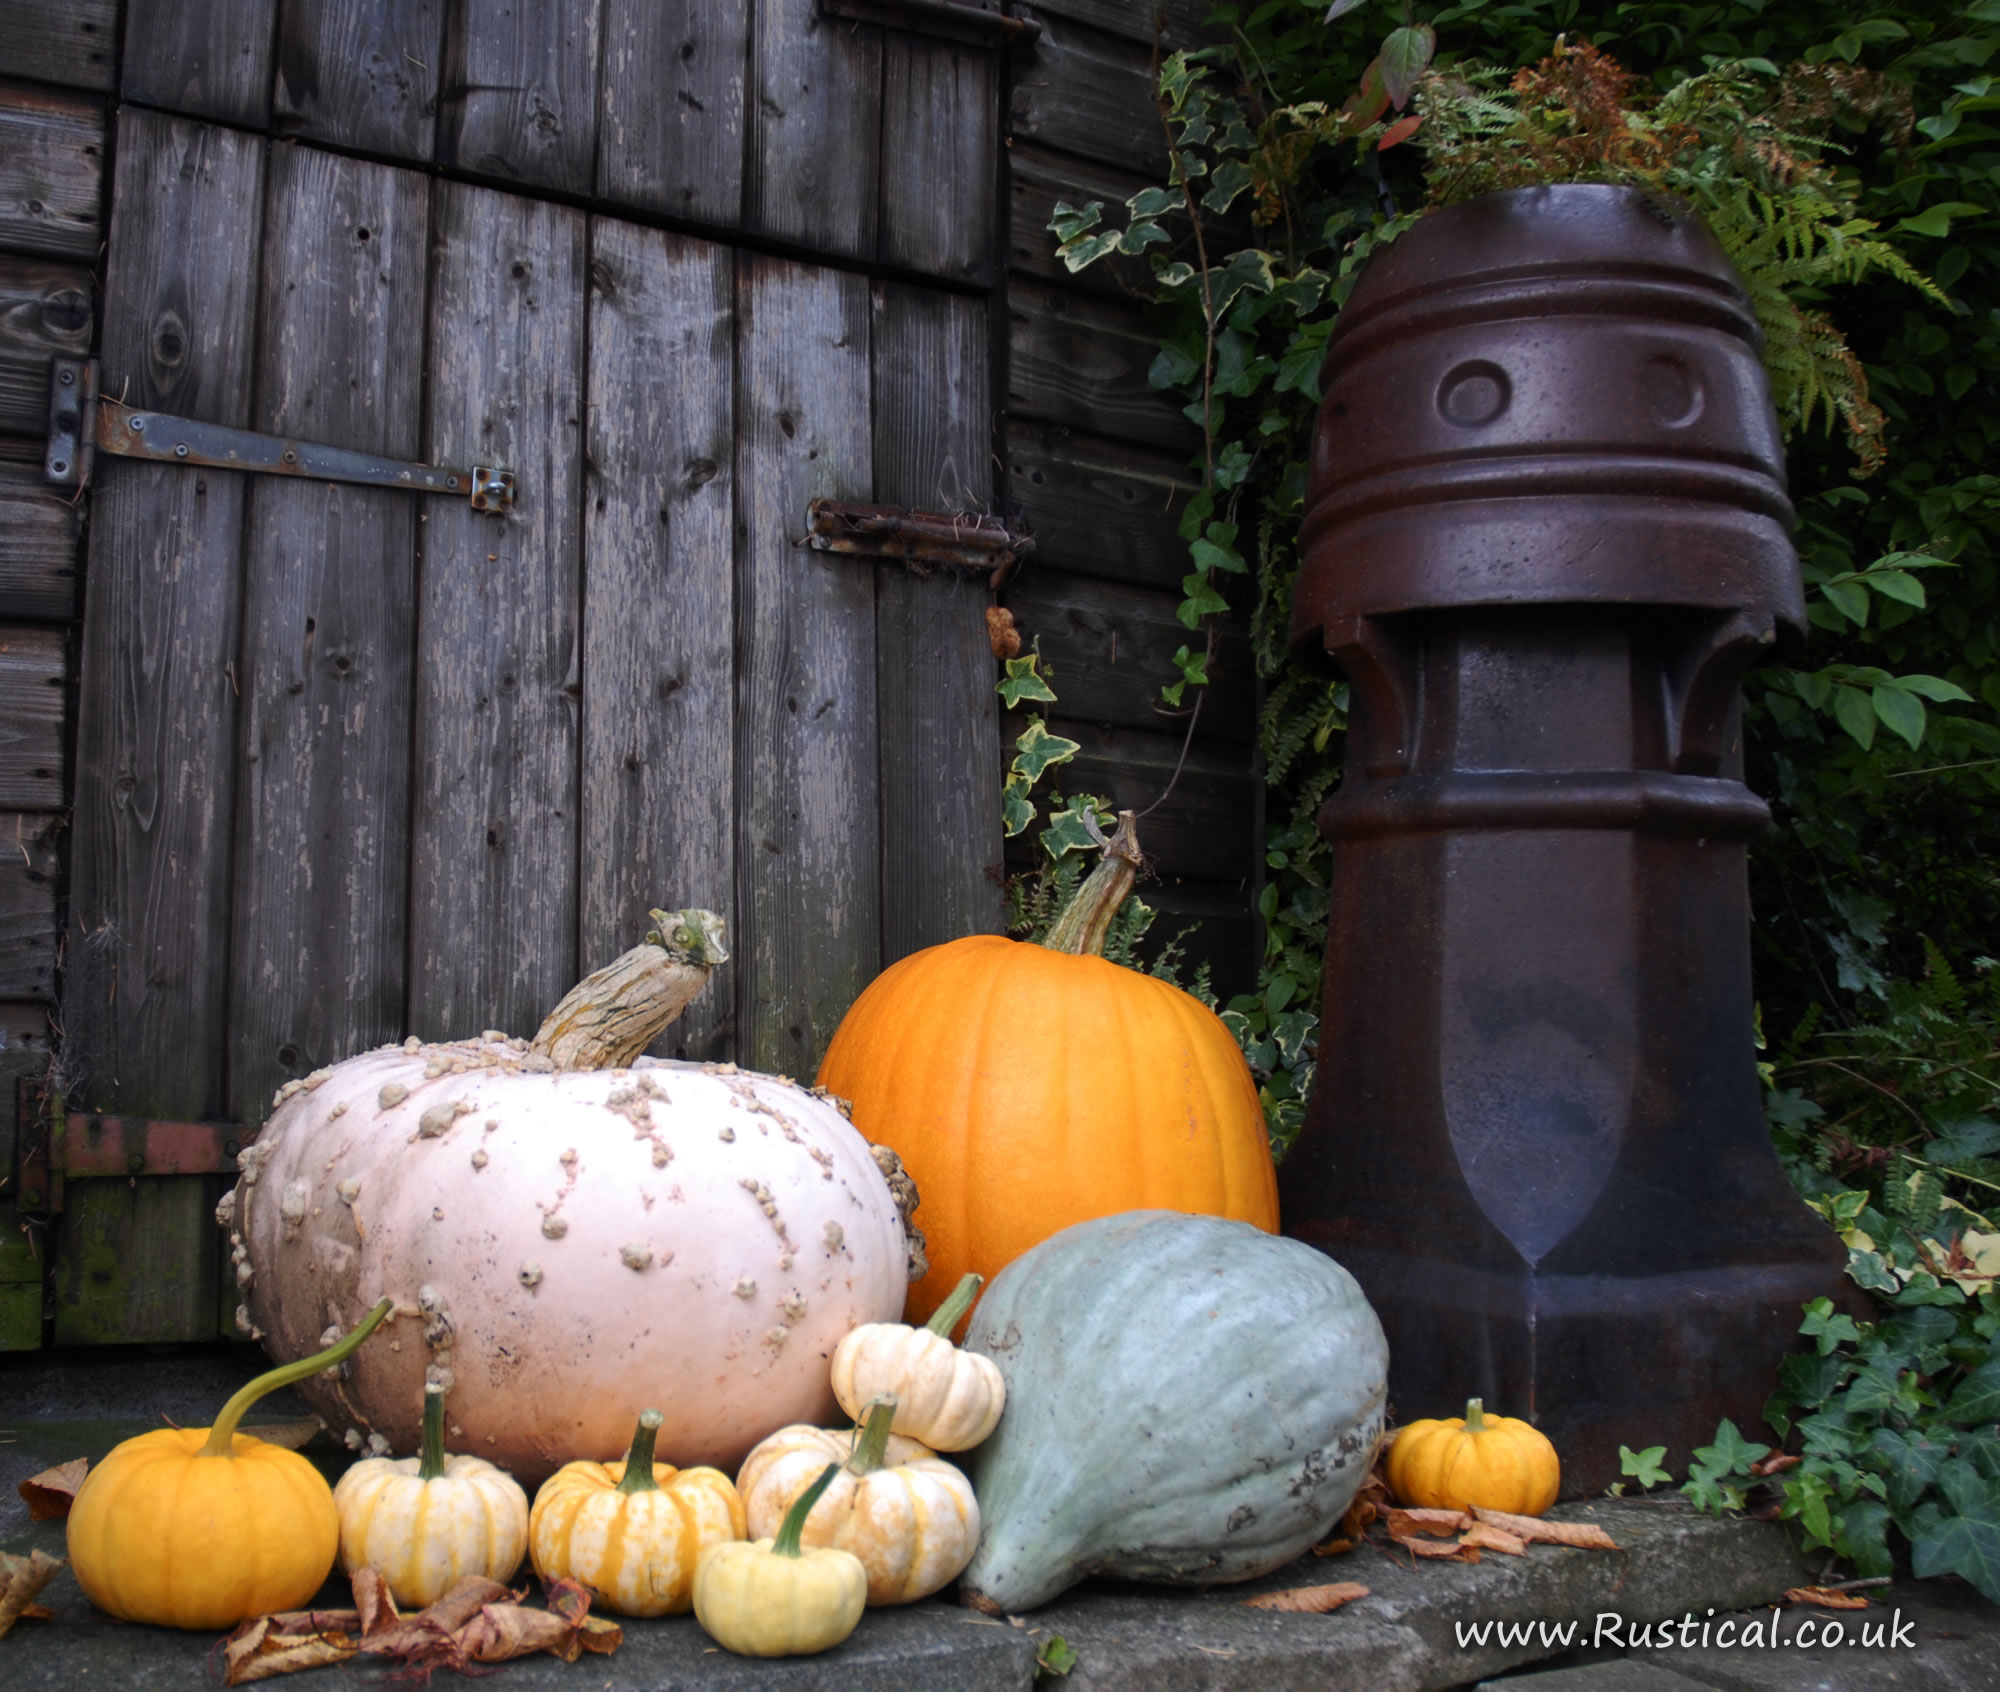 A selection of pumpkins outside our wood shed